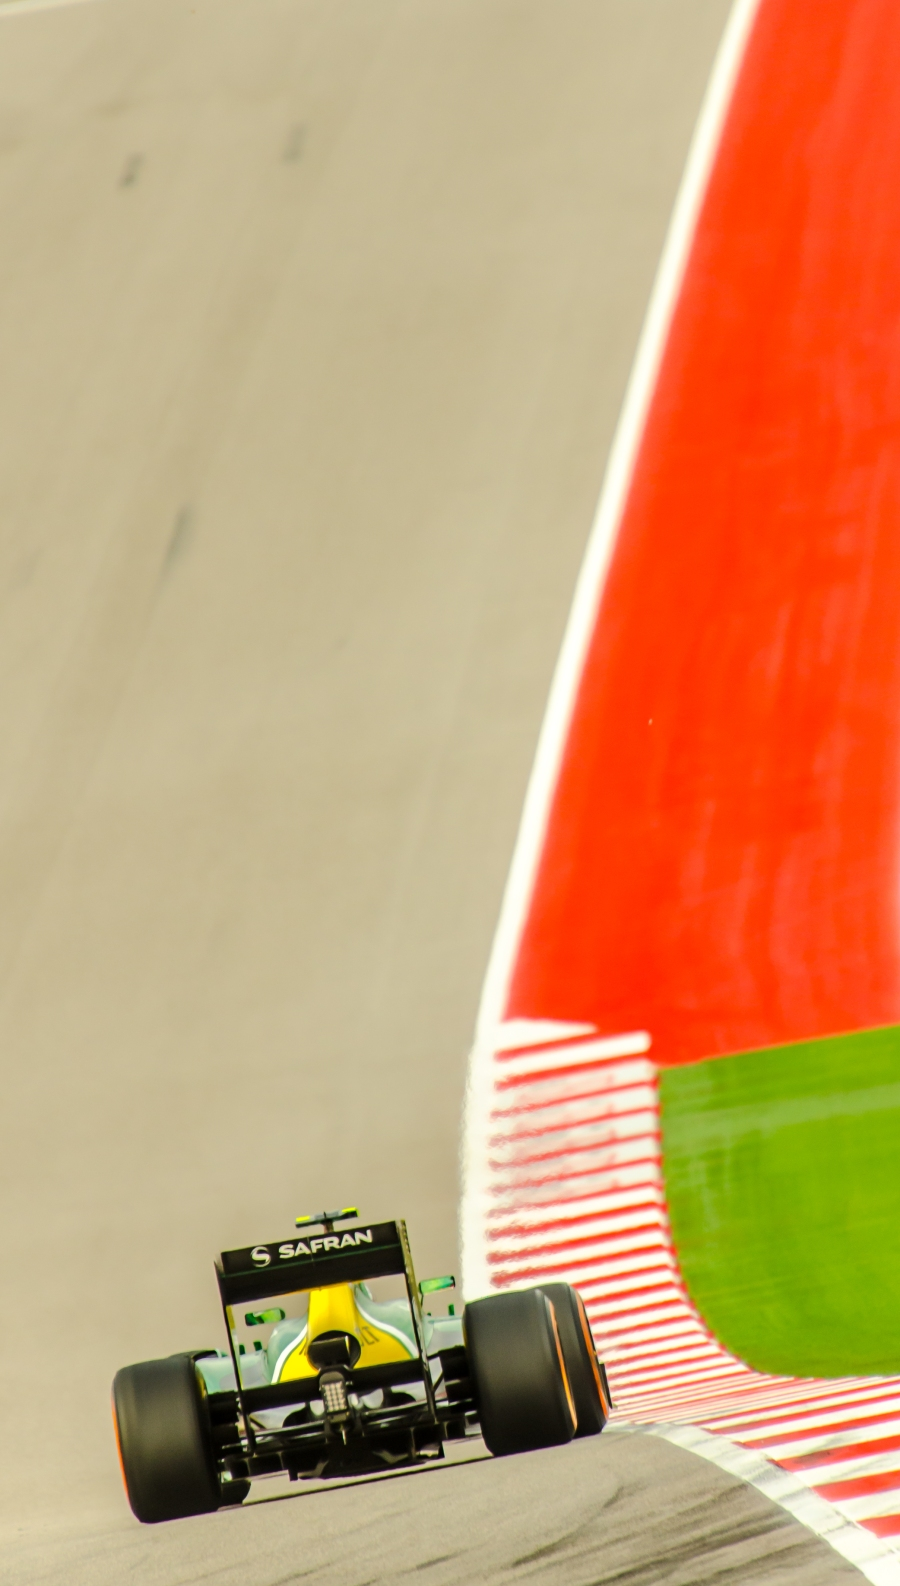 The Caterham CT03 exiting Turn 12 at the 2013 USGP held at the Circuit of the Americas.